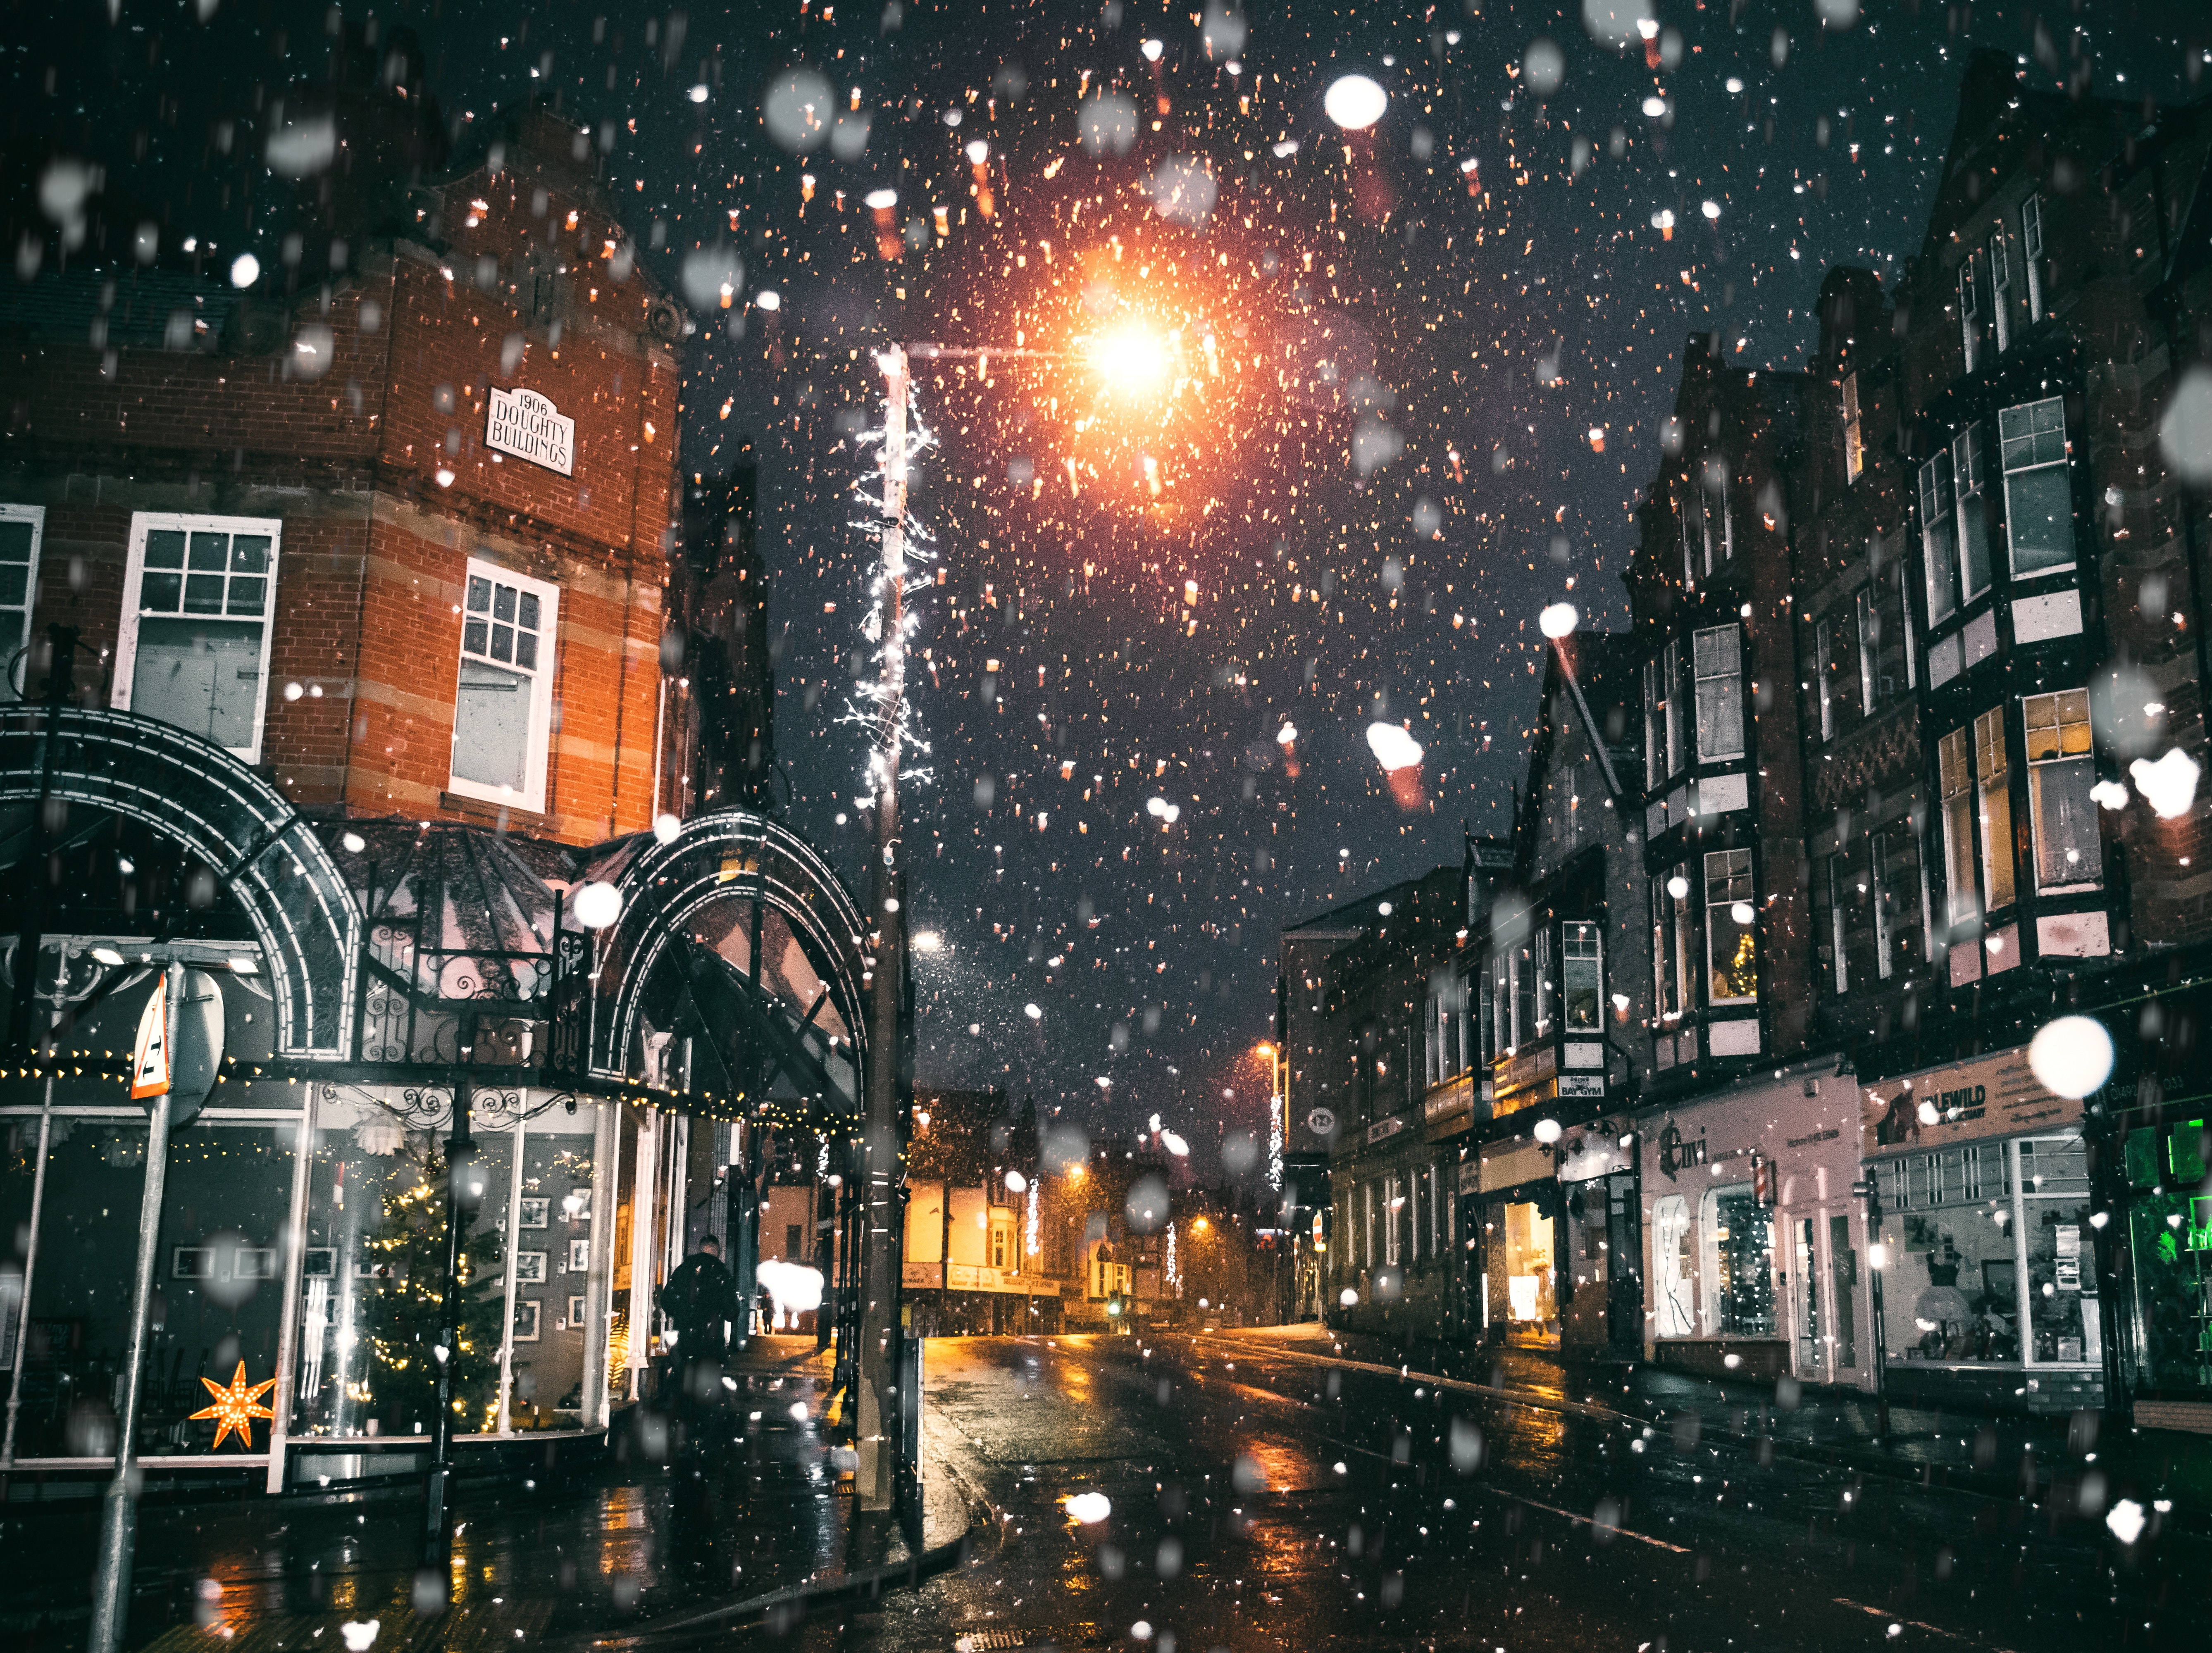 Rain of Snow in Town Painting, Outdoors, Winter, Urban, Town, HQ Photo